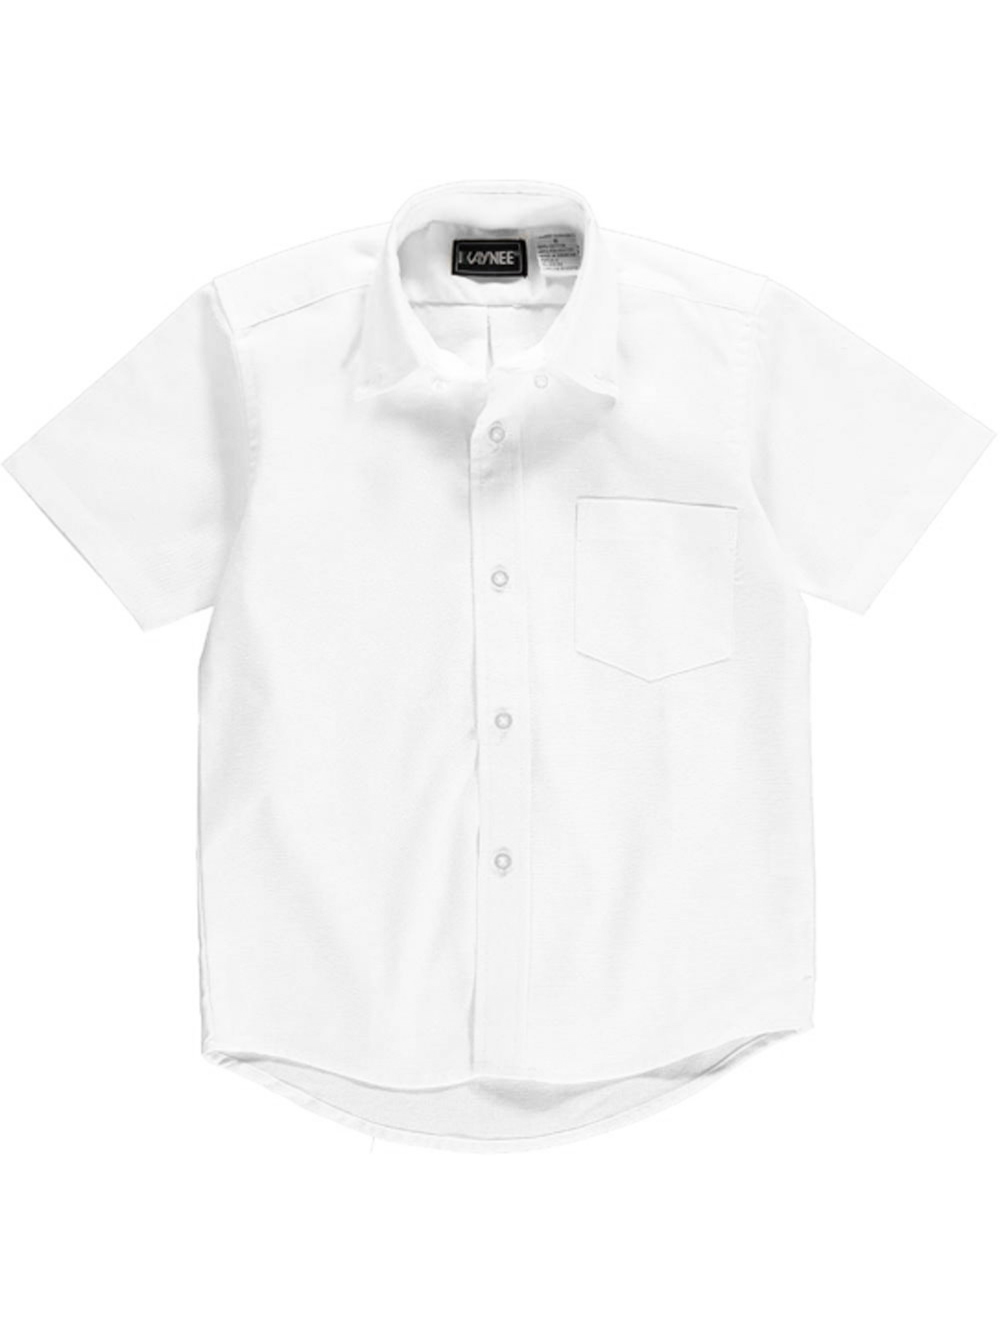 Size 6 Button-Downs for Boys